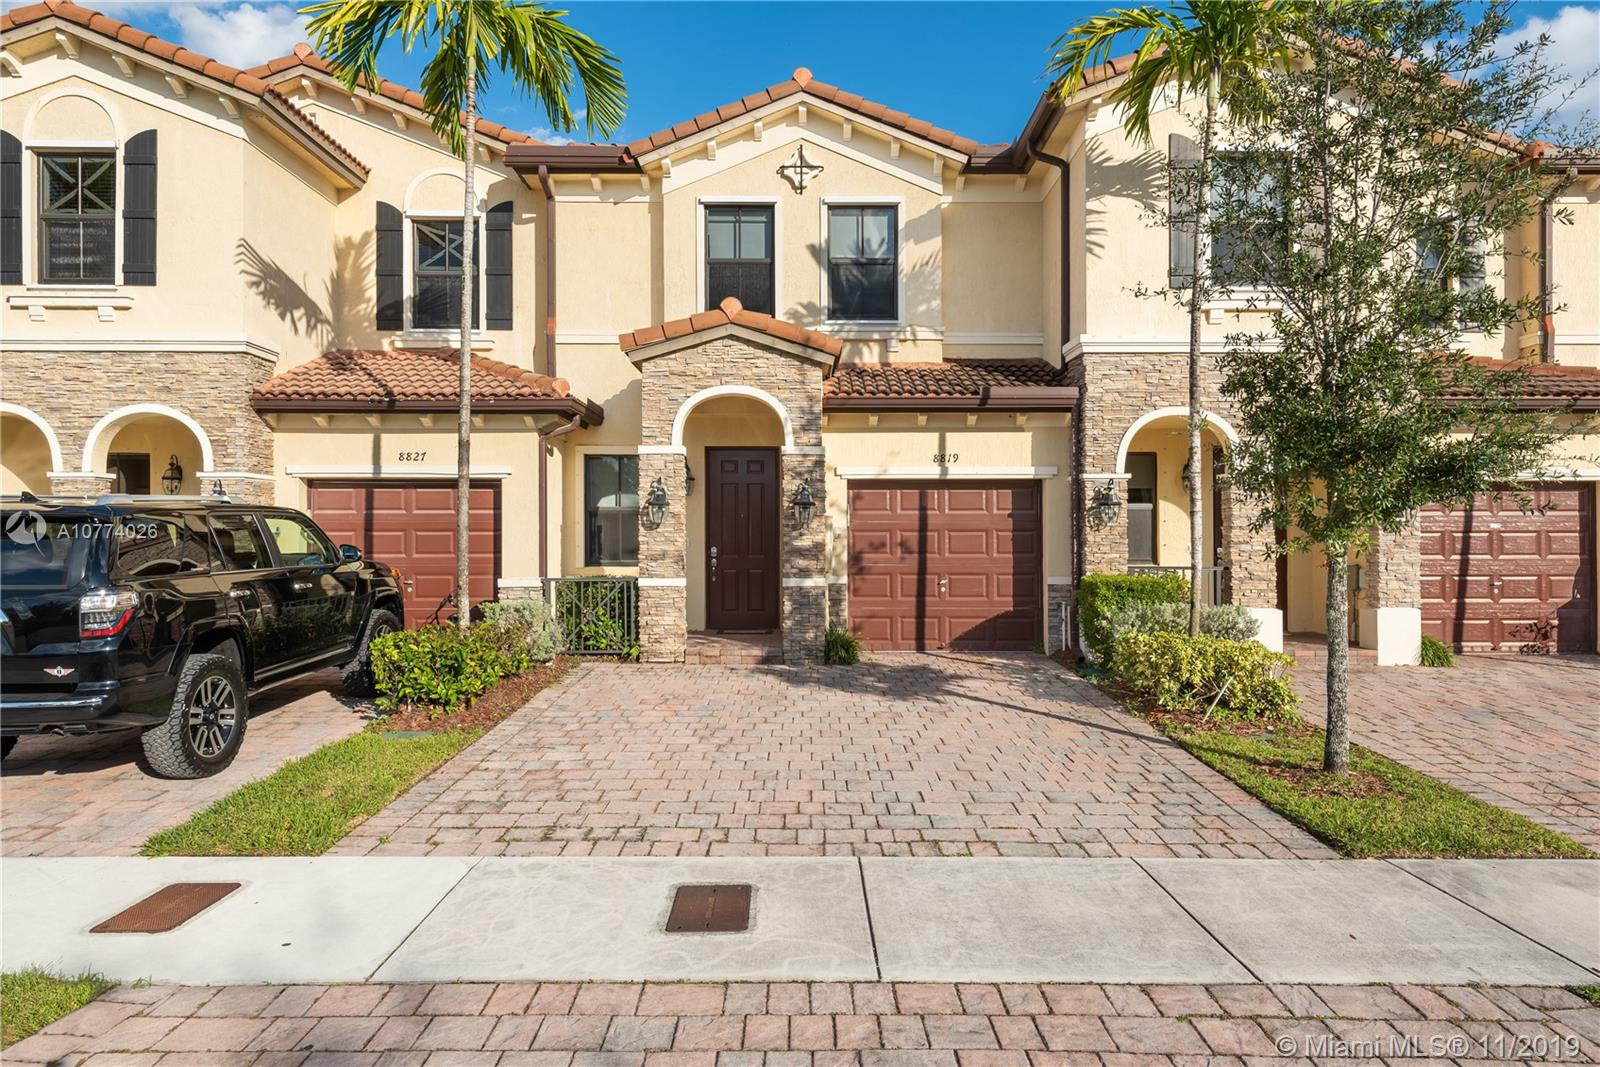 8819 NW 98th Ave - Doral, Florida